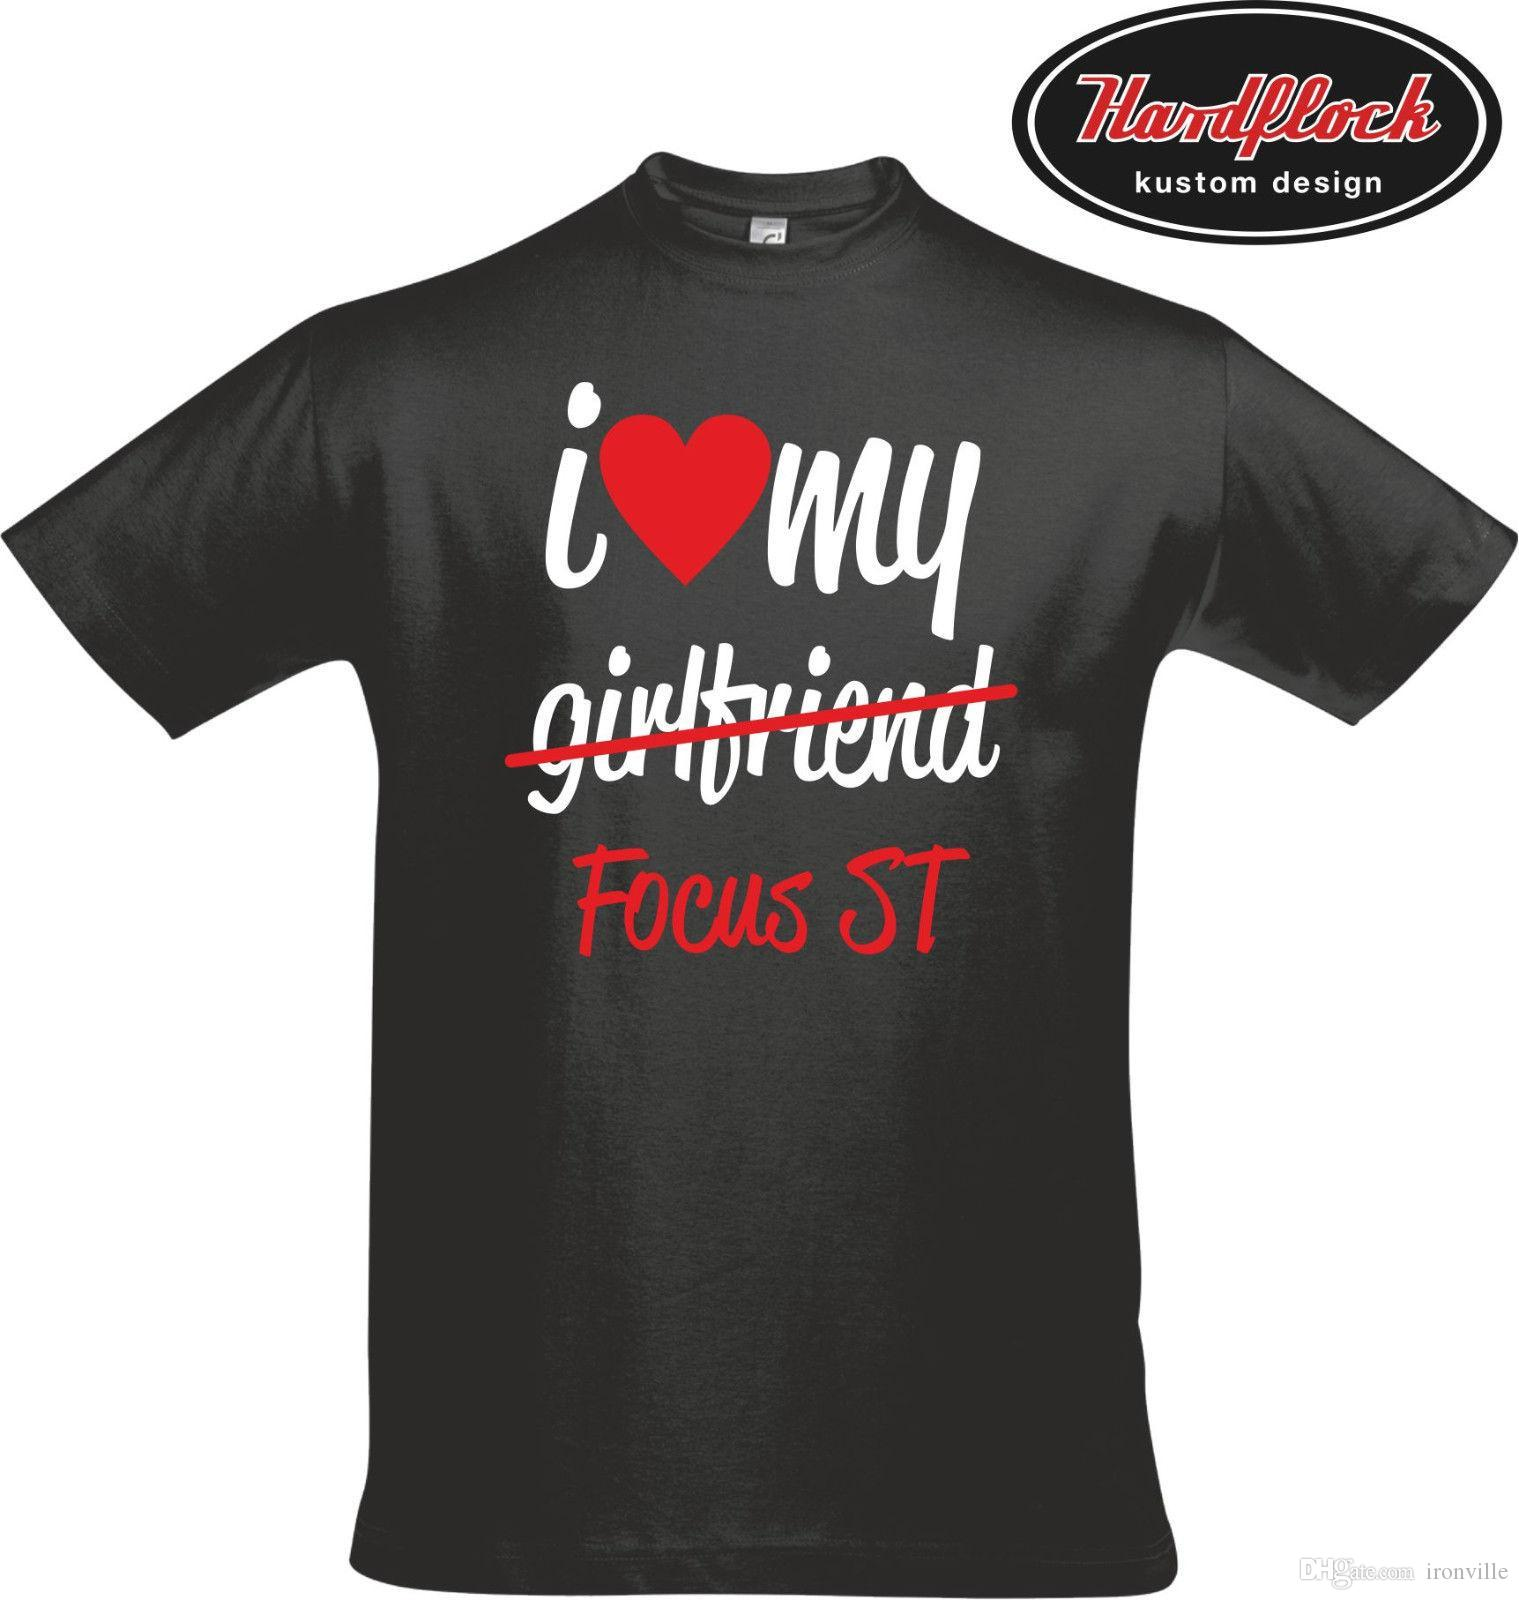 T-Shirt I love my Girlfriend Focus ST Tuning RS Ford Facelift CC Turbo K16  New Funny Brand Clothing Fashion T-Shirt Hipster Cool Tops